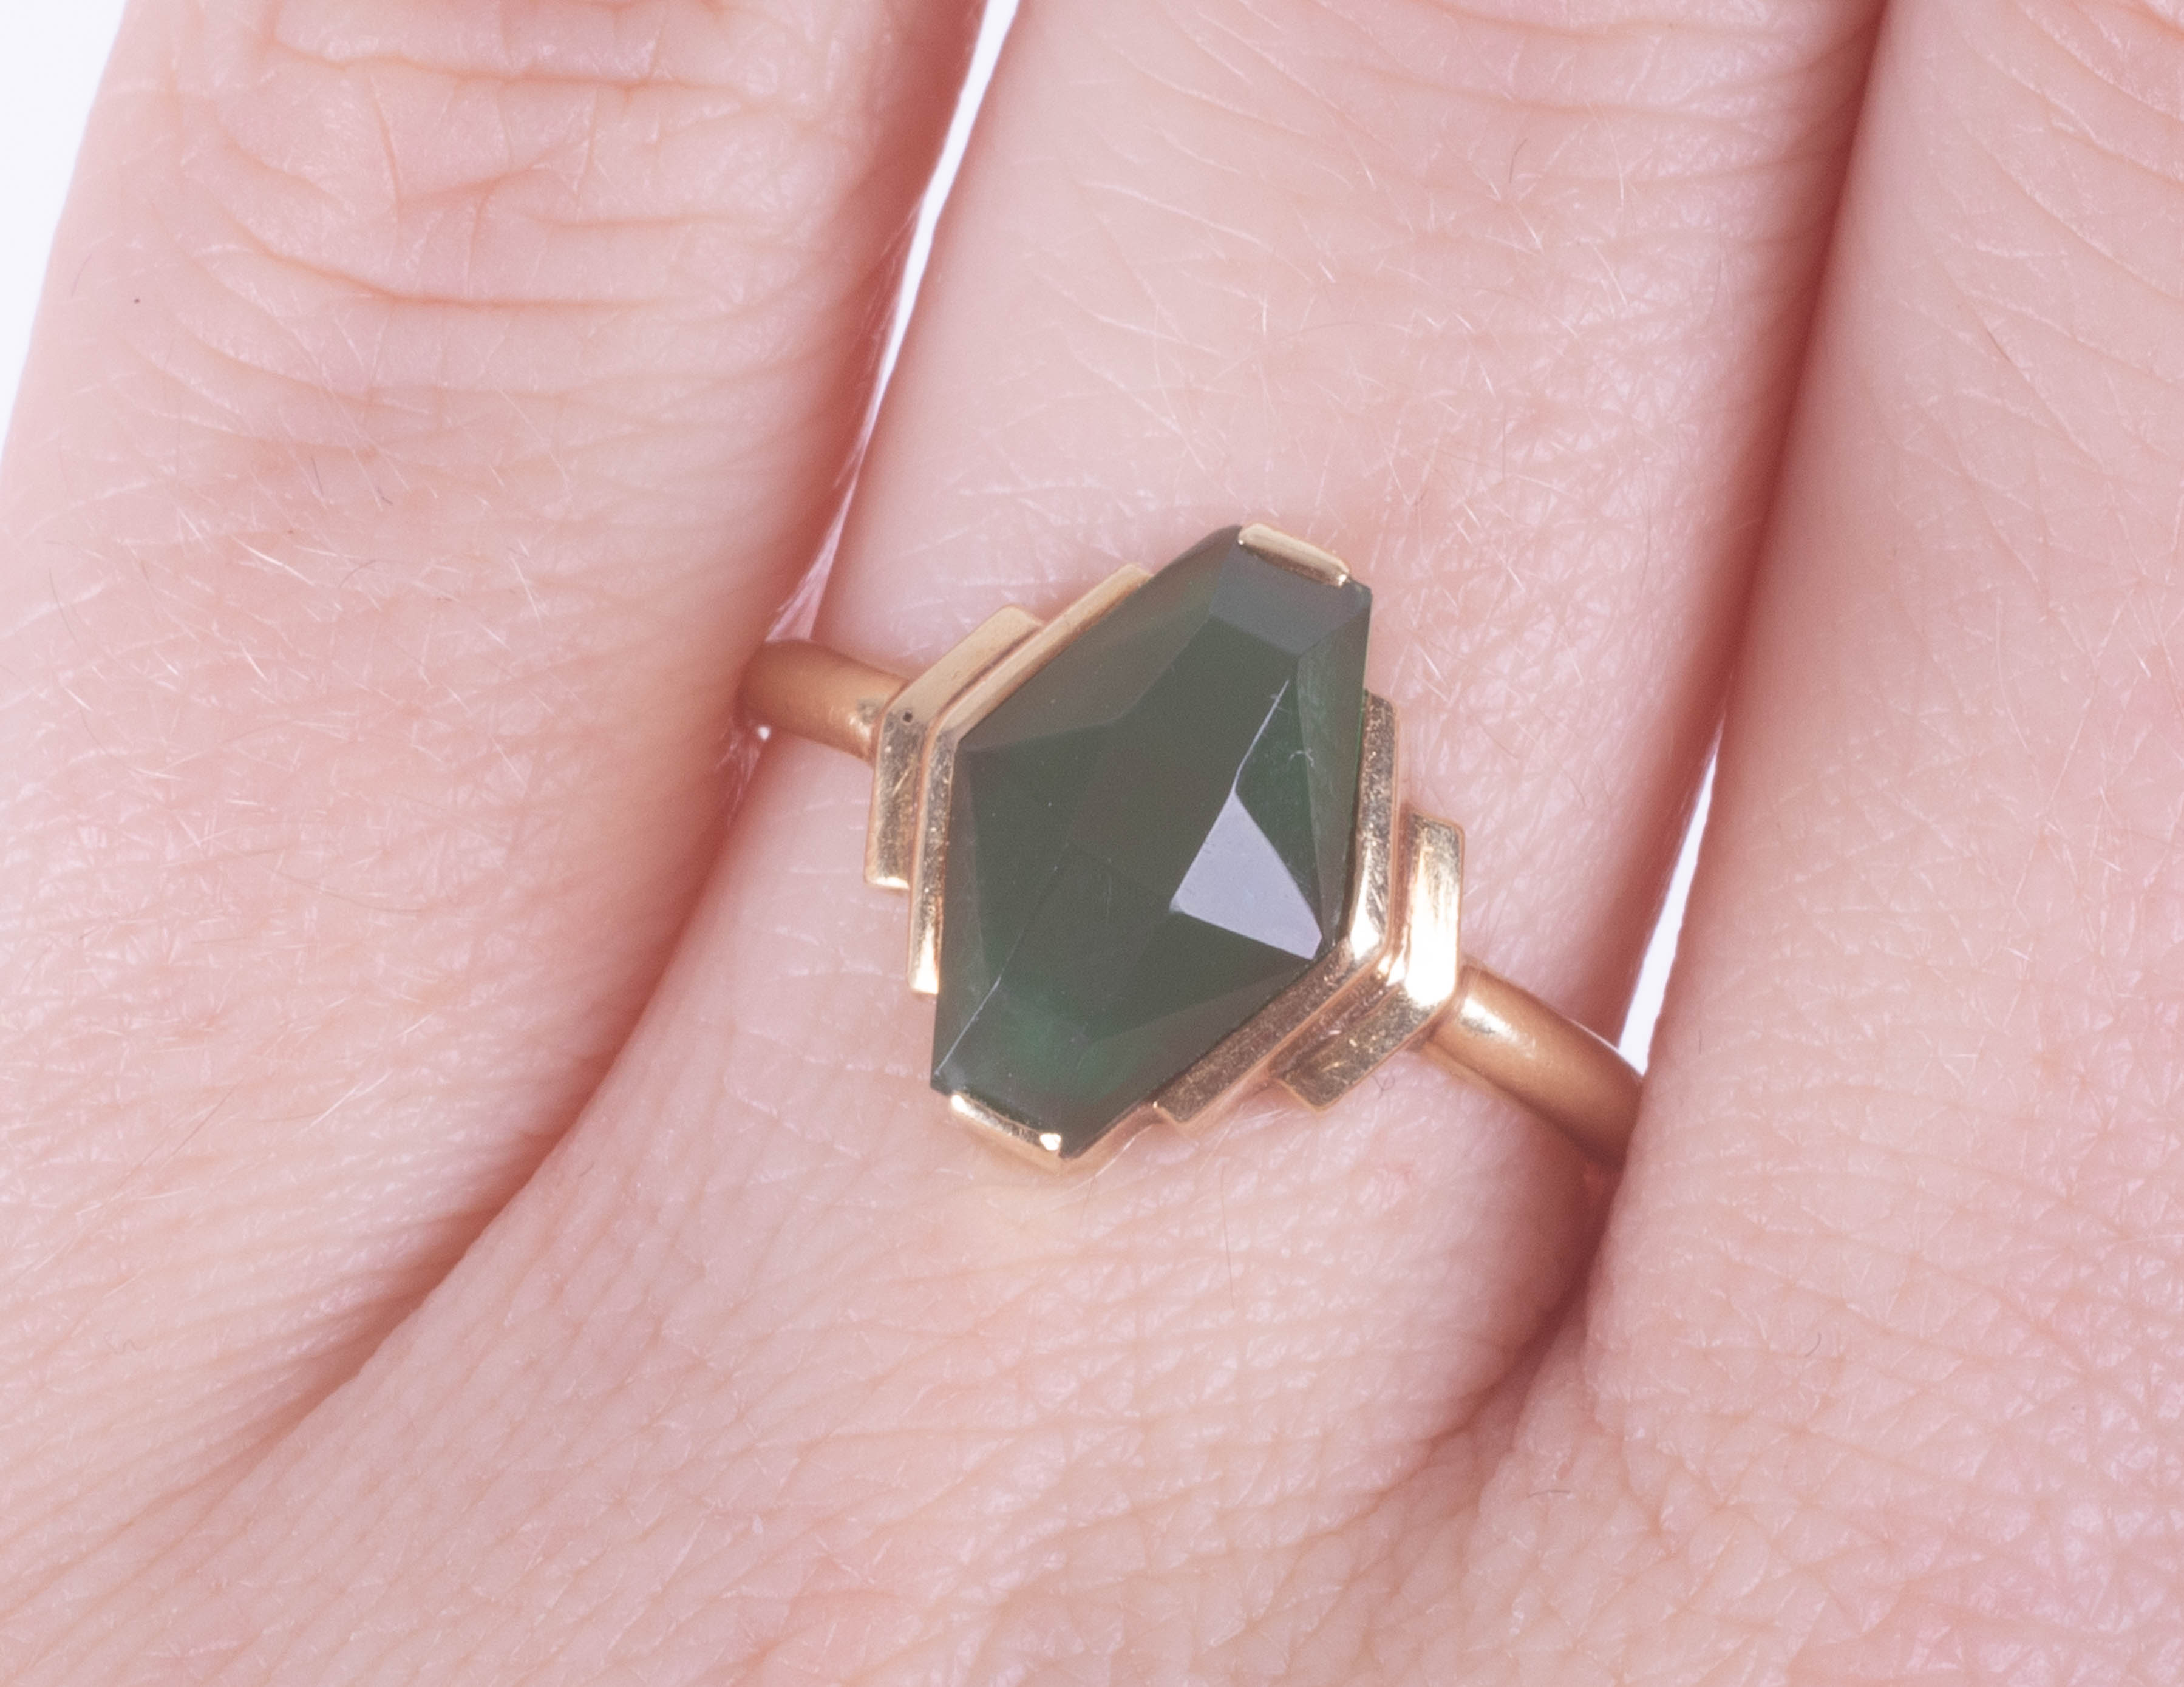 A 14ct green gemstone set ring, maker's mark A.P, size N. - Image 2 of 2